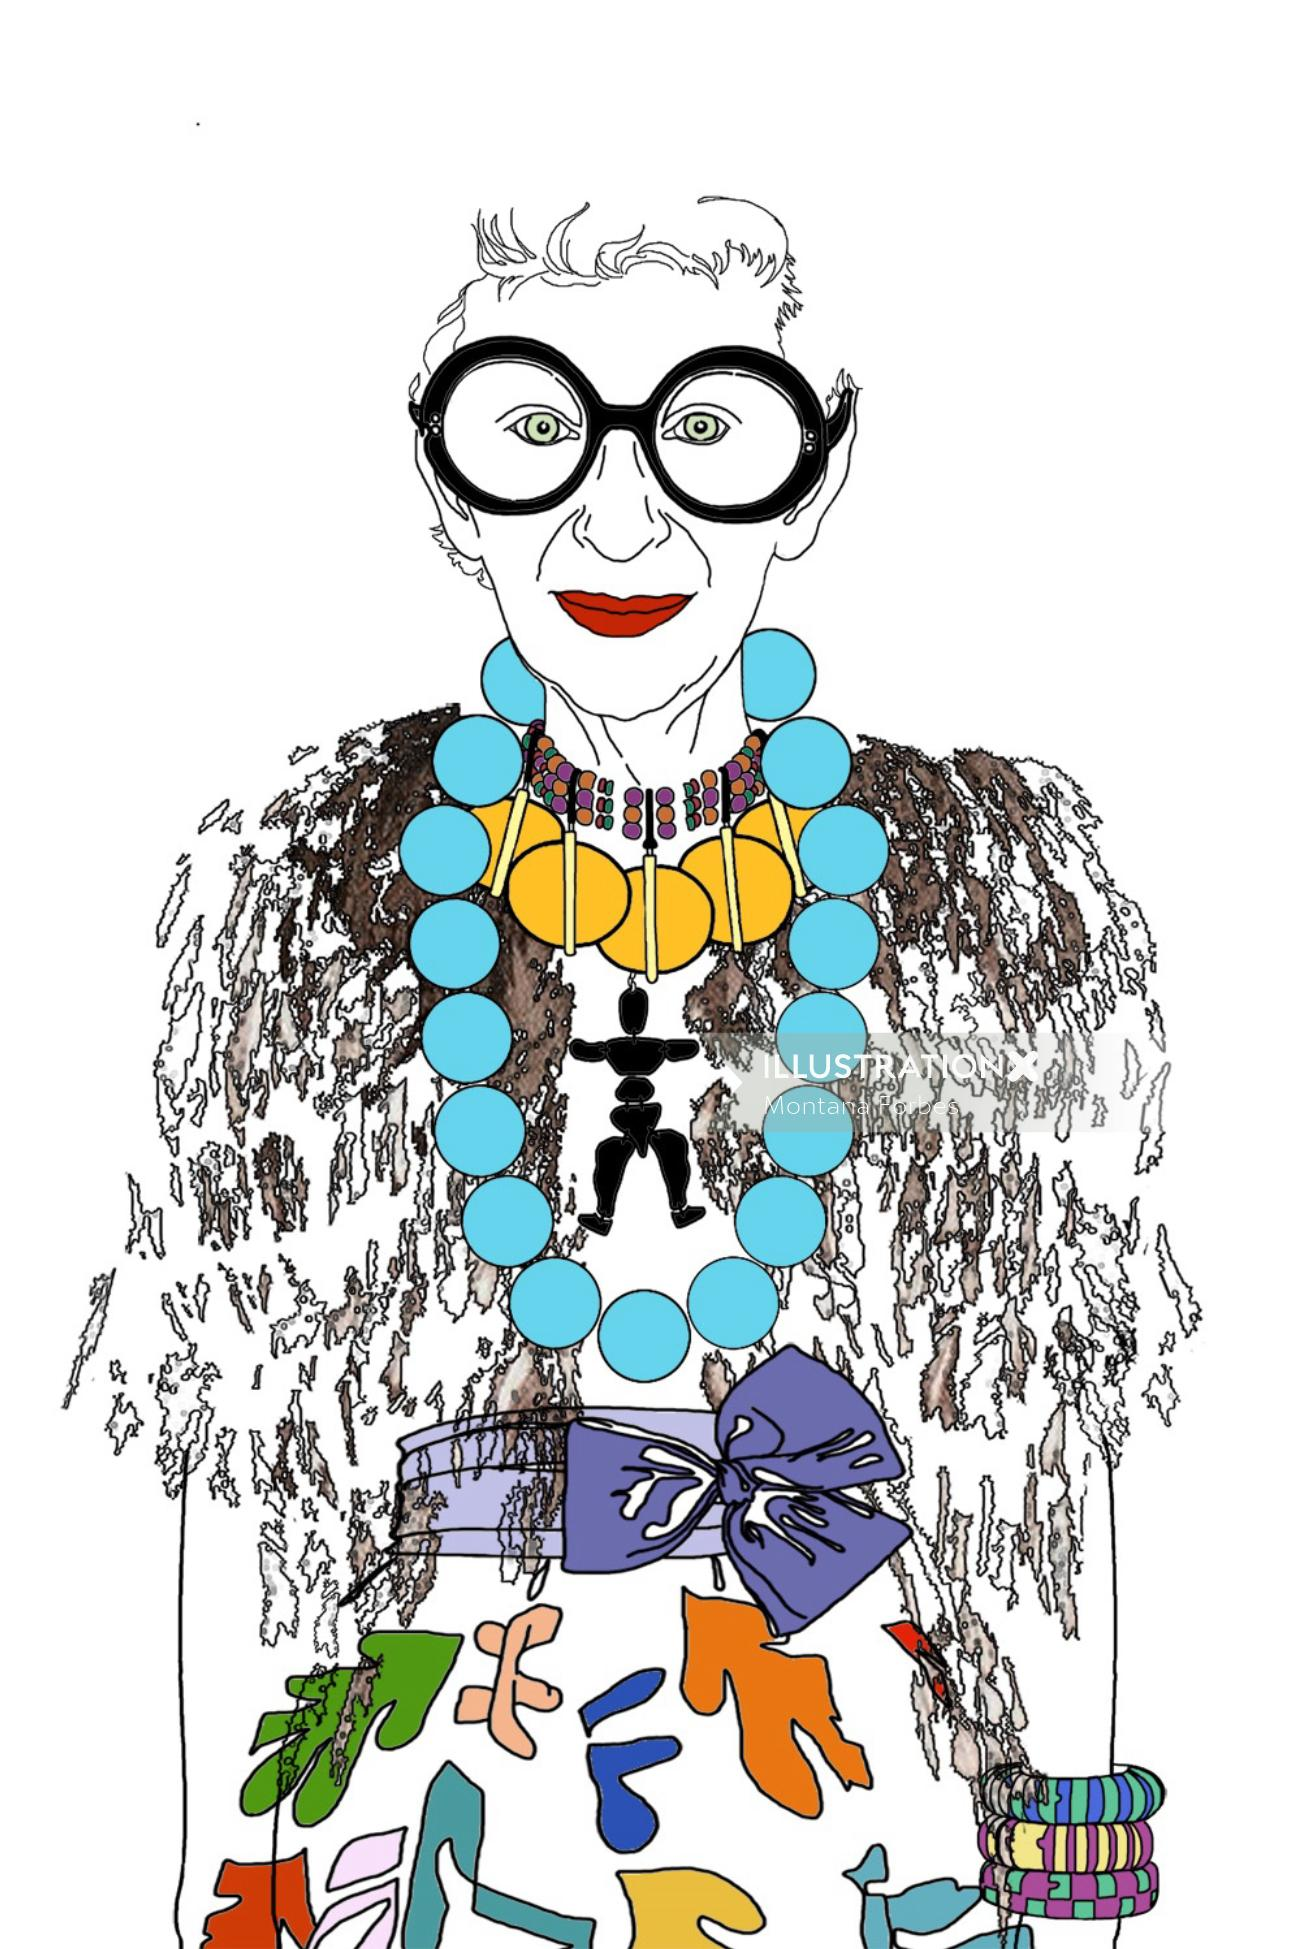 Fashion illustration of an elderly woman